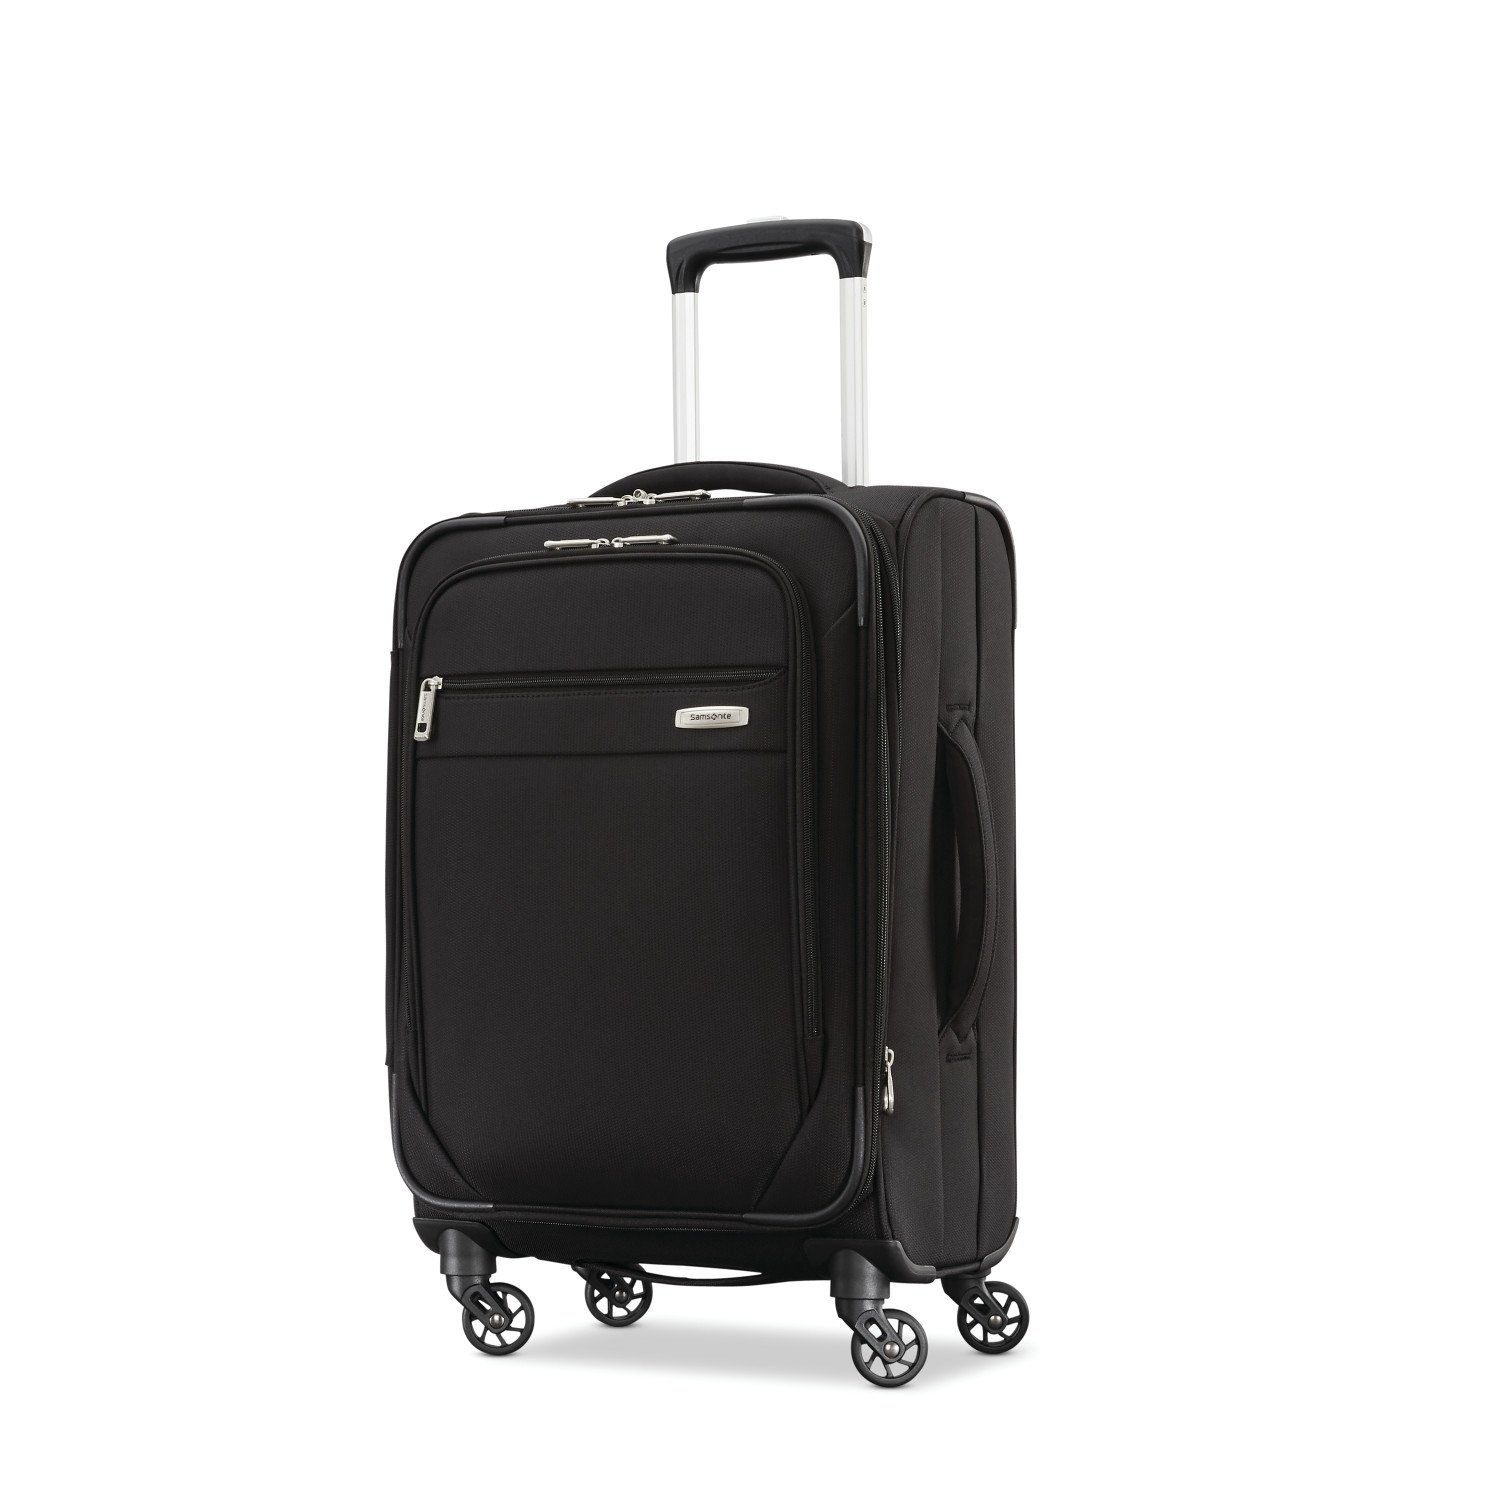 Samsonite Advena Expandable Softside Carry On Luggage with Spinner Wheels, 20 Inch, Black